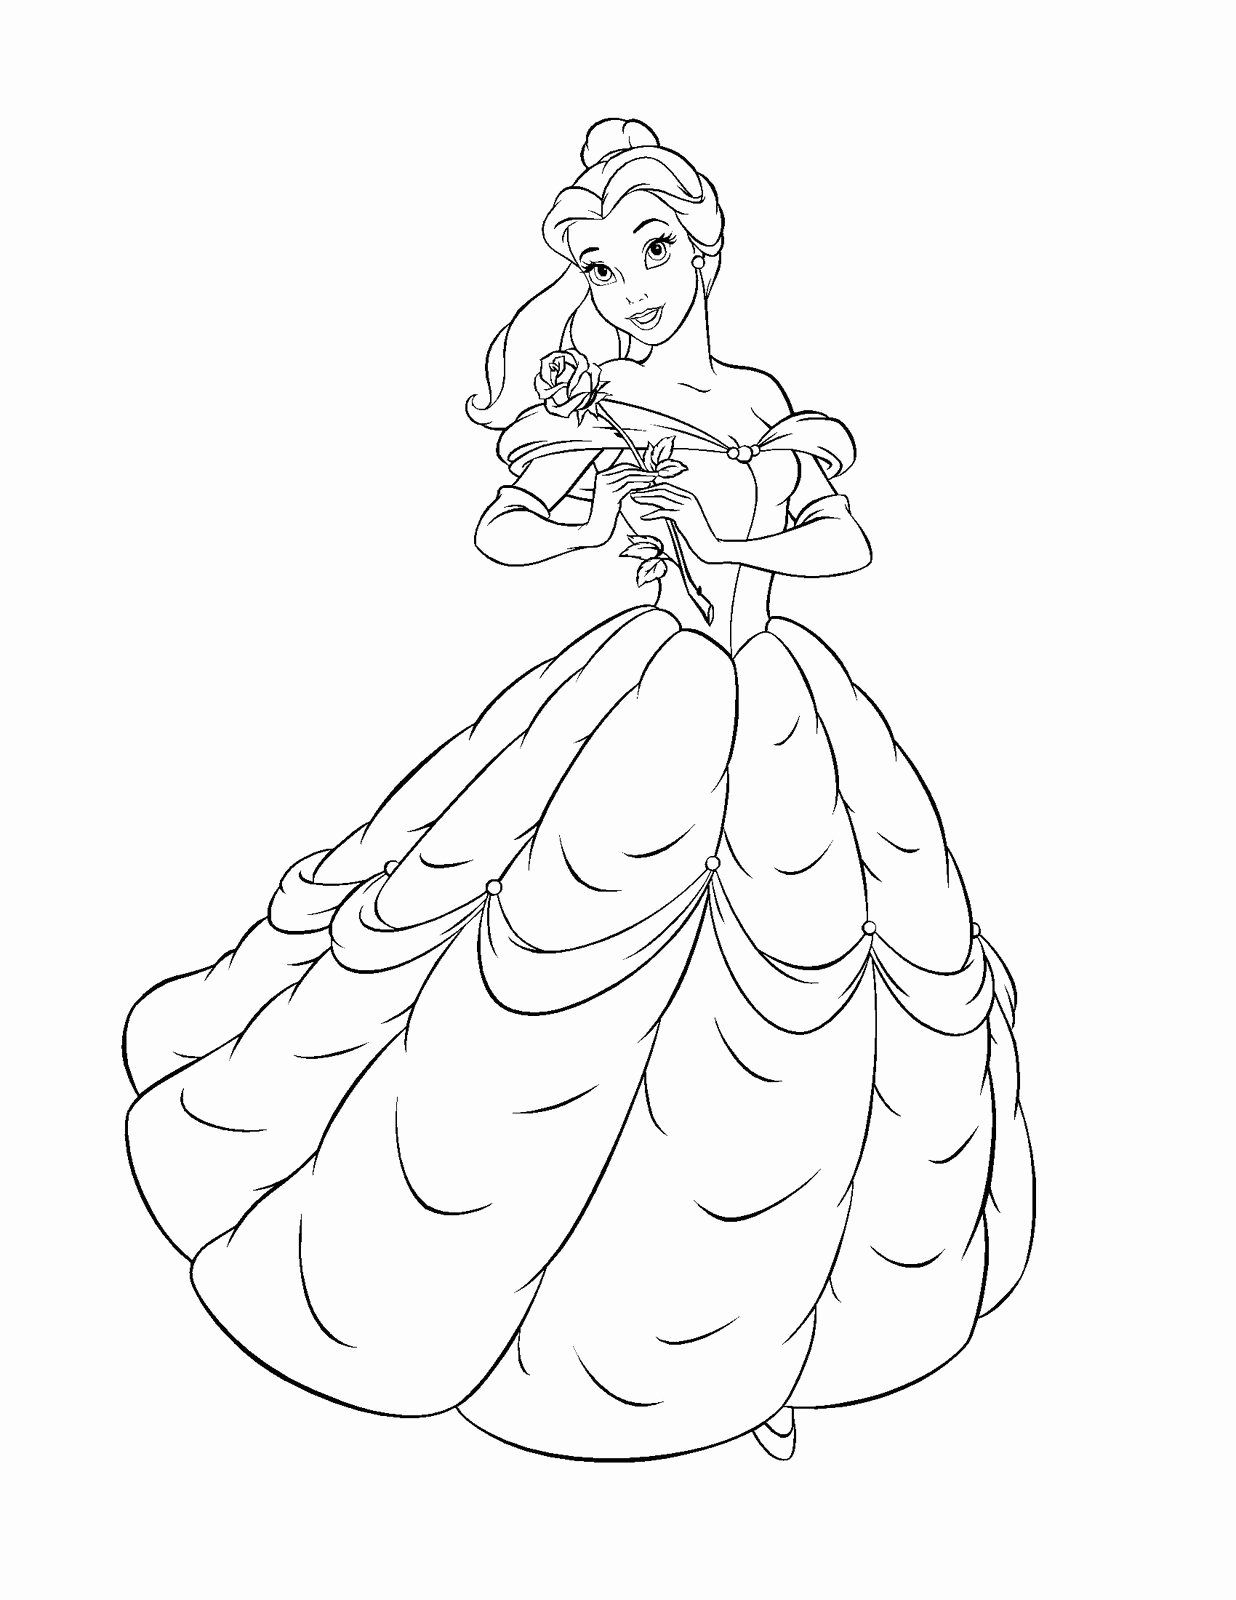 Belle Disney Coloring Pages Inspirational Free Printable Belle Coloring Pages For Ki In 2020 Belle Coloring Pages Disney Princess Coloring Pages Disney Princess Colors